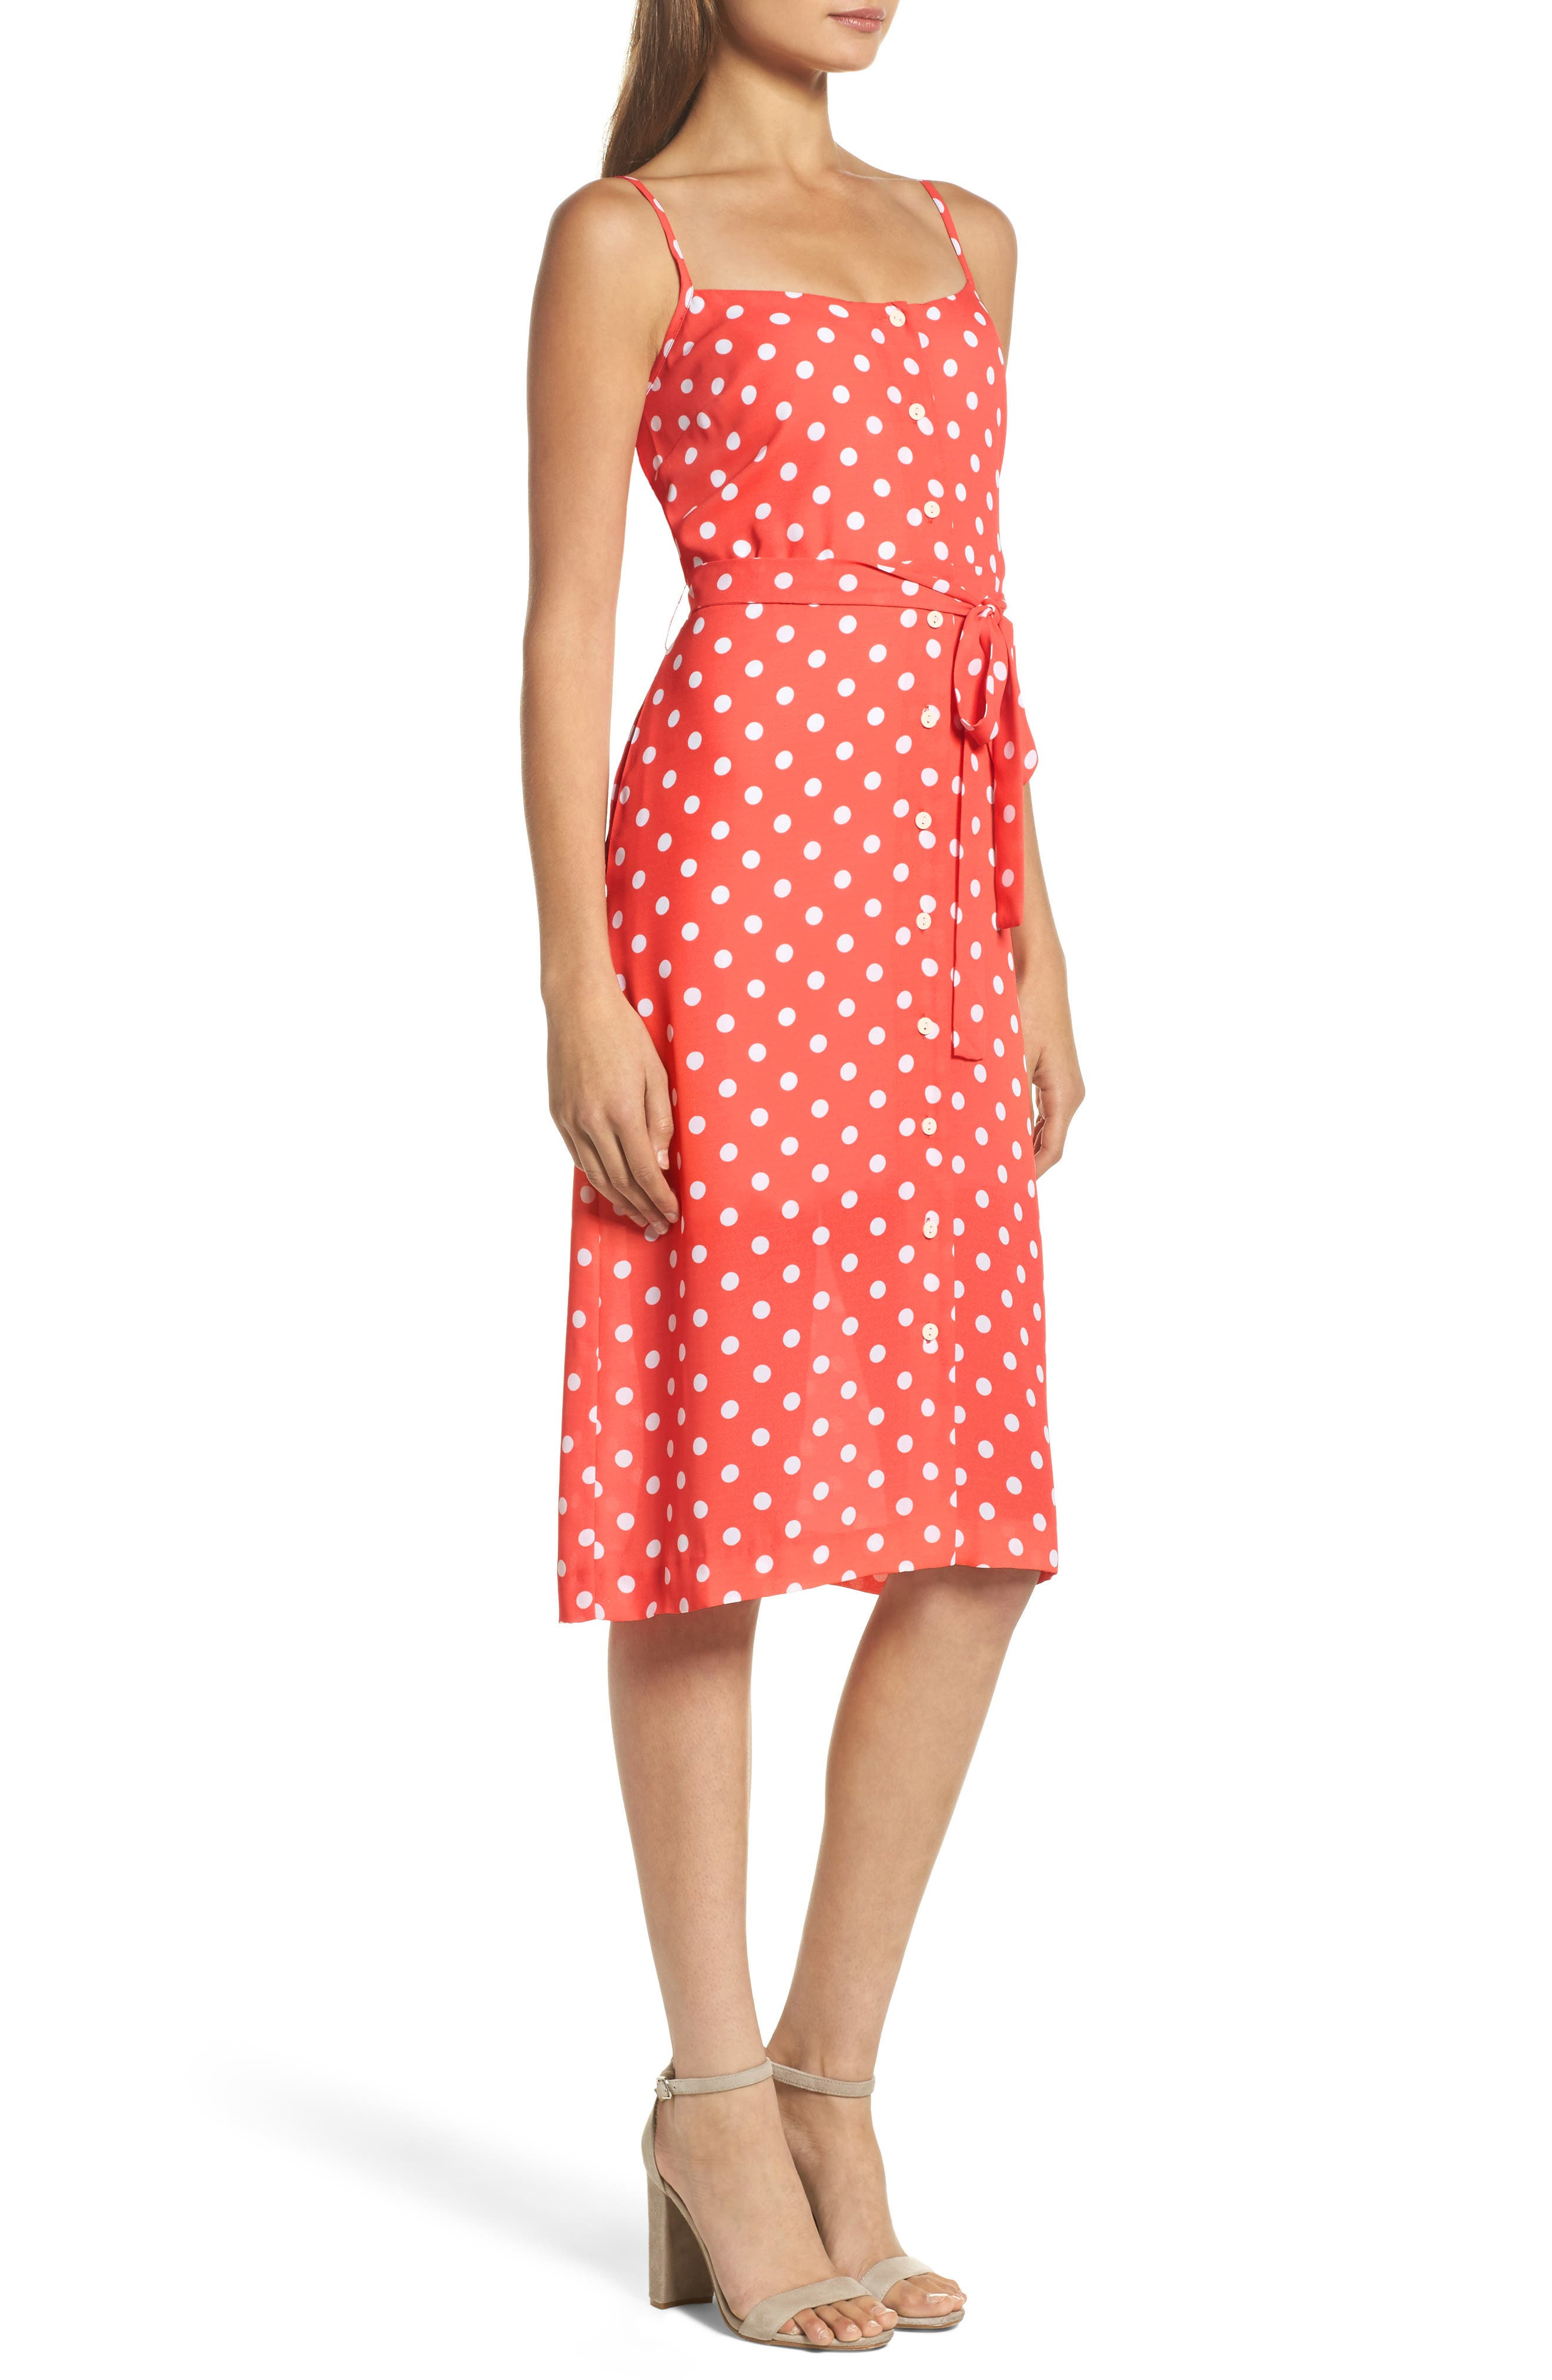 Flower Frolicking Midi Dress,                             Alternate thumbnail 3, color,                             Coral Polka Dot